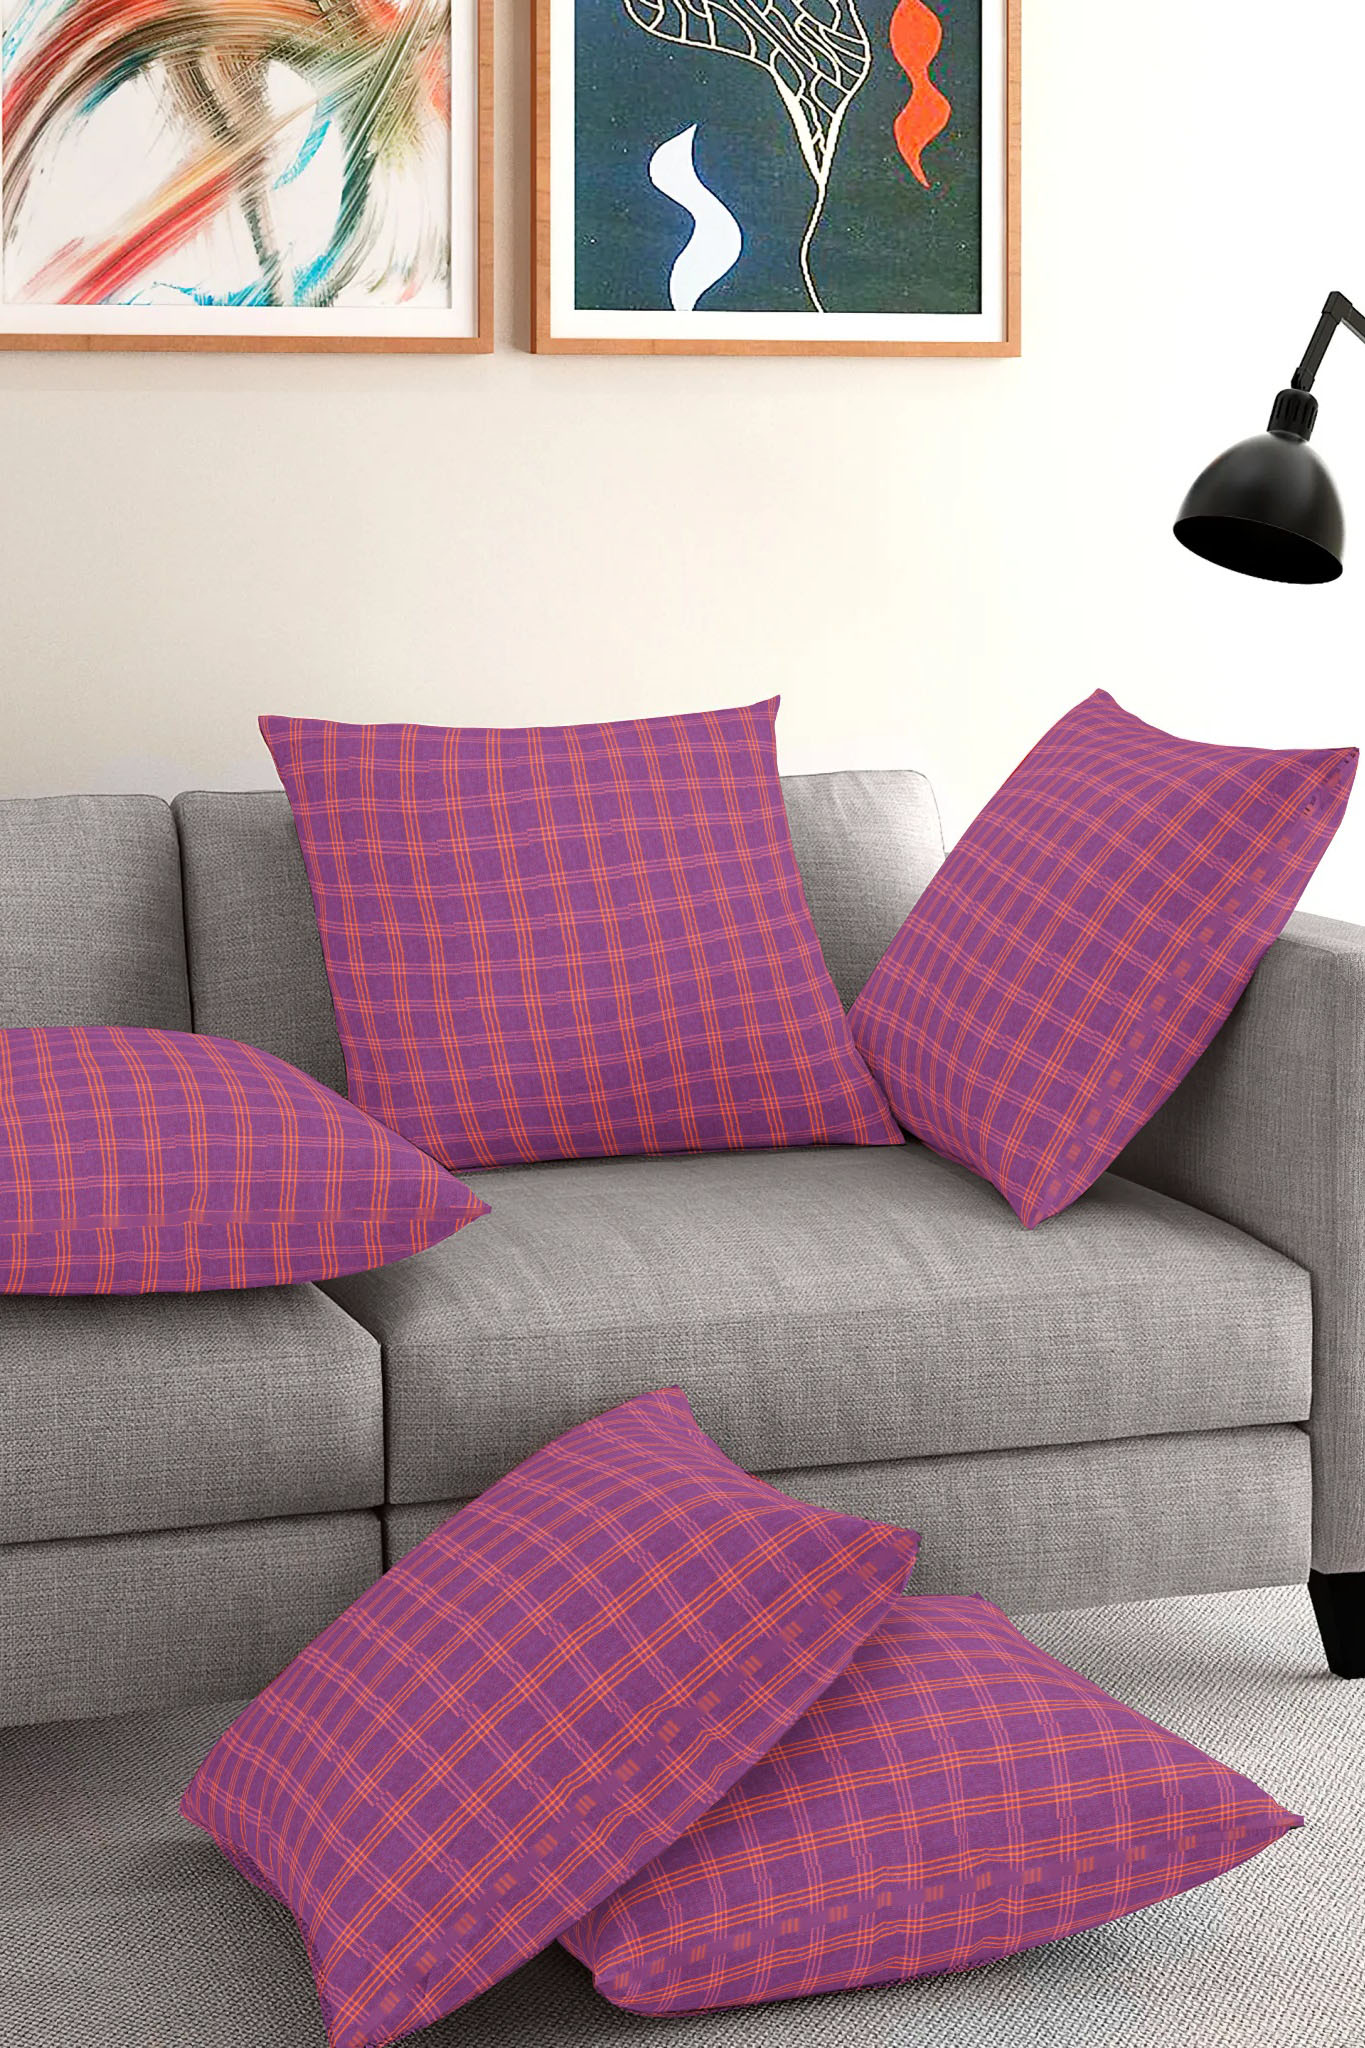 Set of 5-Purple Yellow Cotton Cushion Cover-35406-16x16 Inches